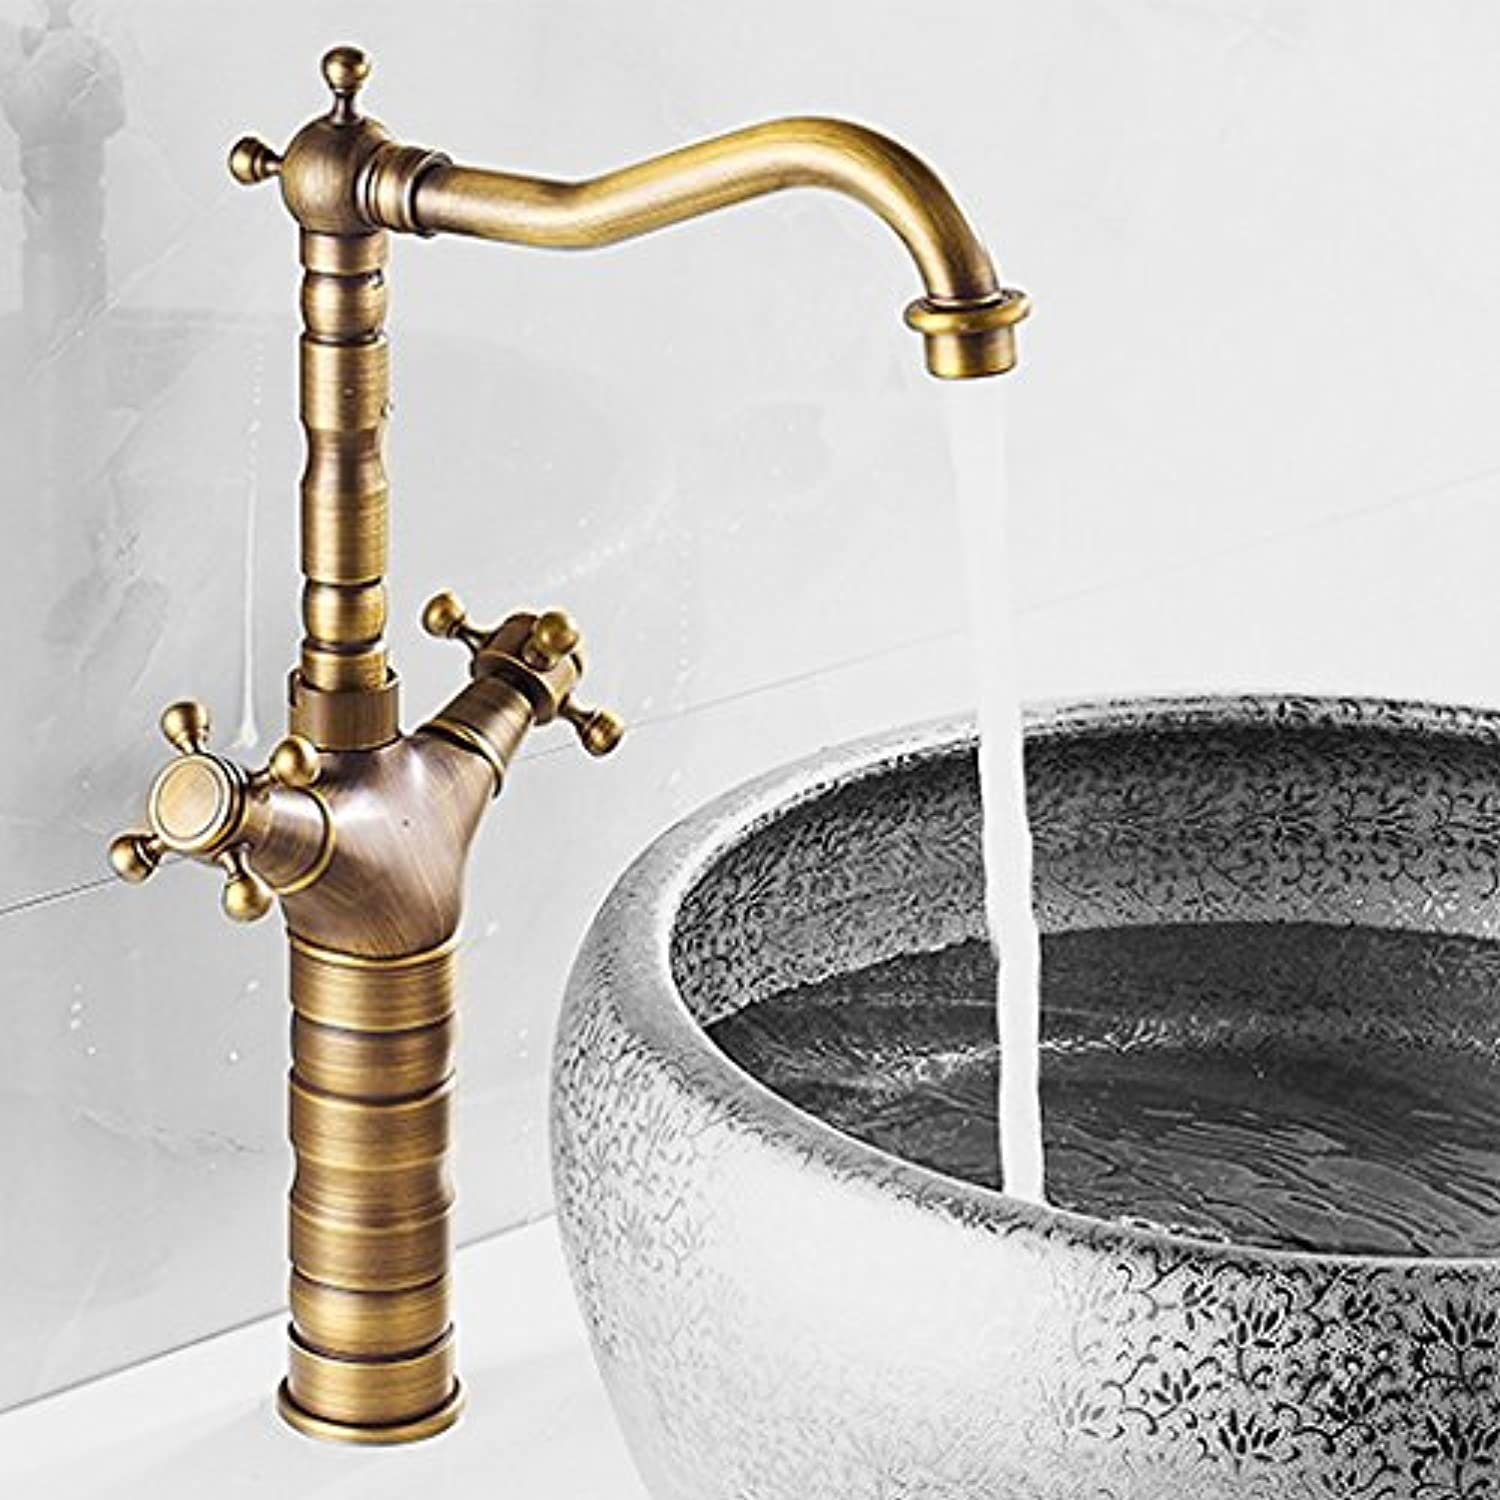 Hlluya Professional Sink Mixer Tap Kitchen Faucet Sink, hot and cold, full of copper, Single Hole, sink faucet,38.5  20cm